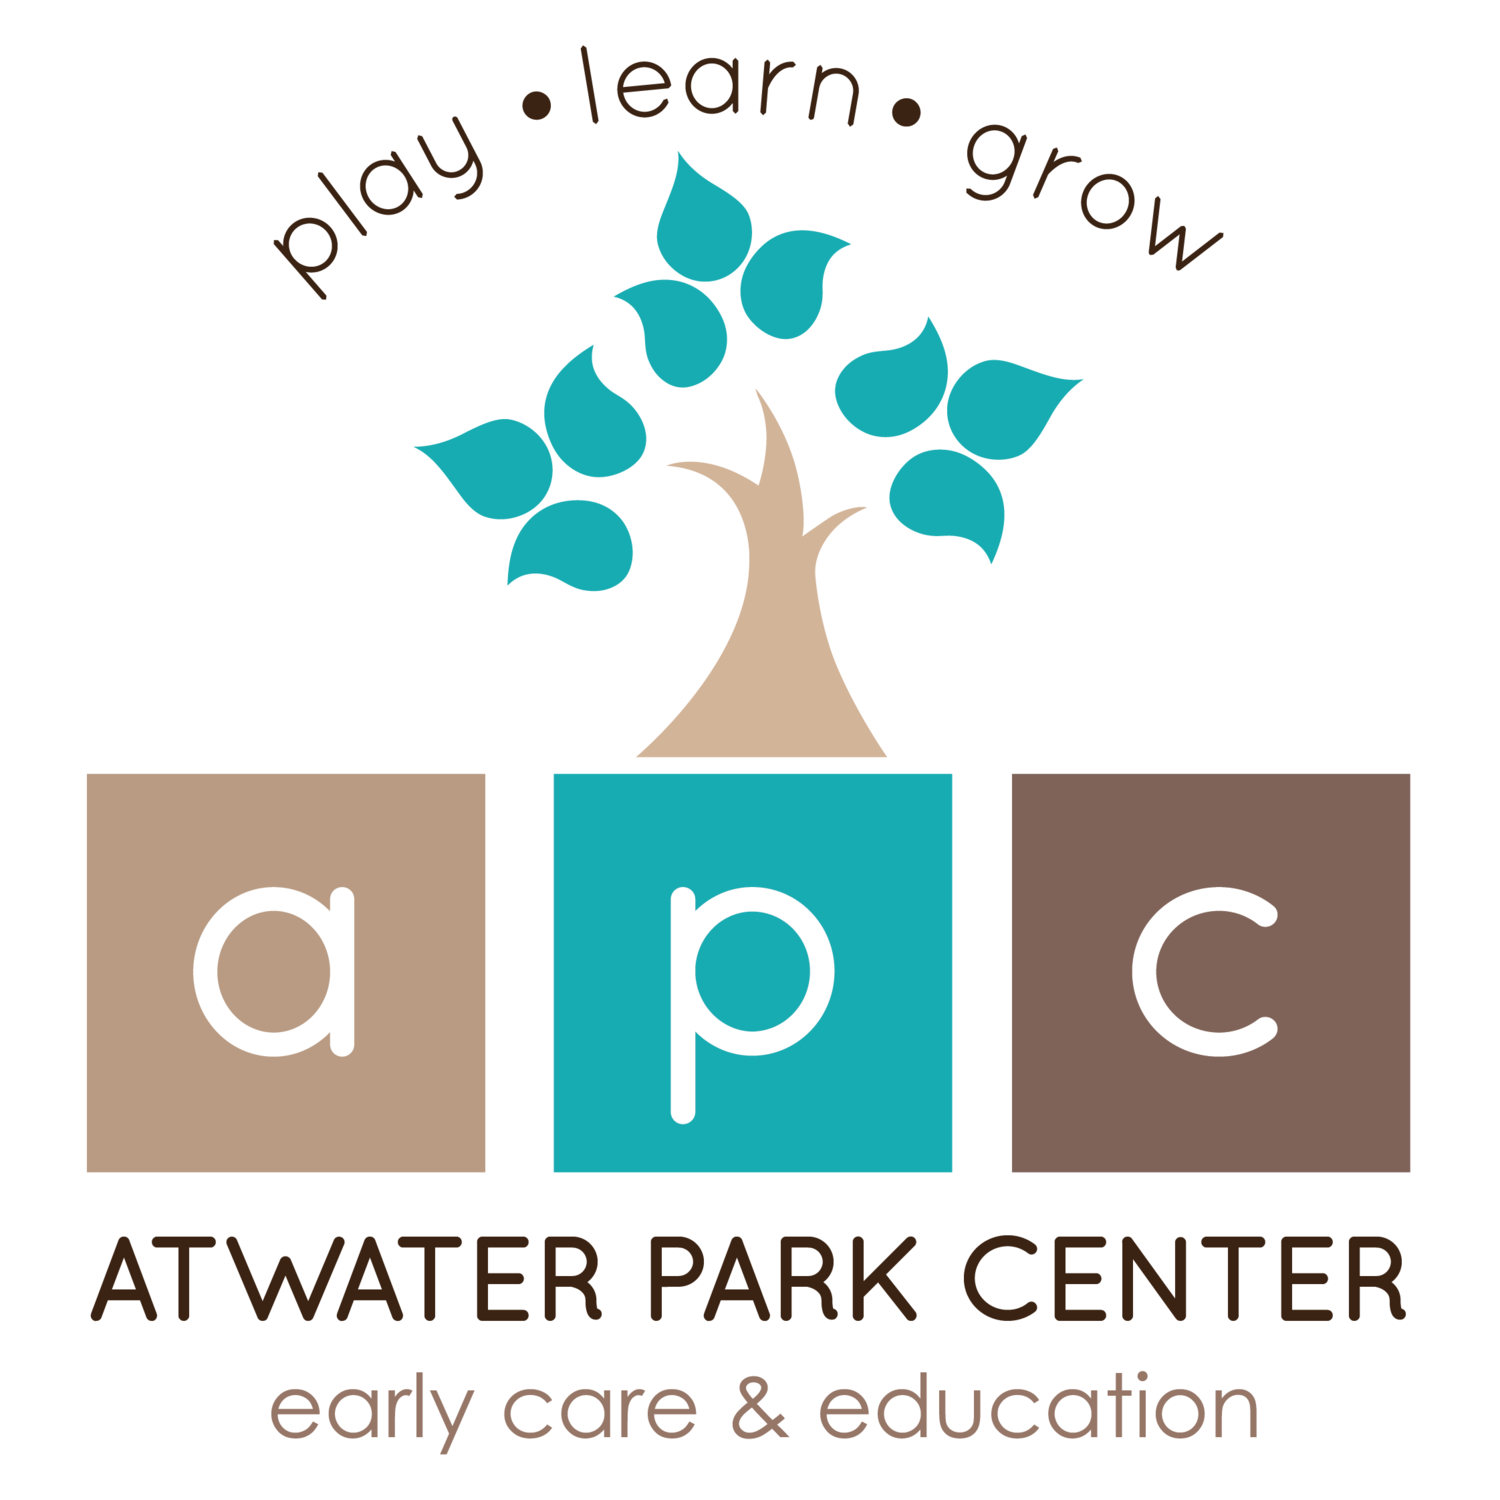 Atwater Park Center